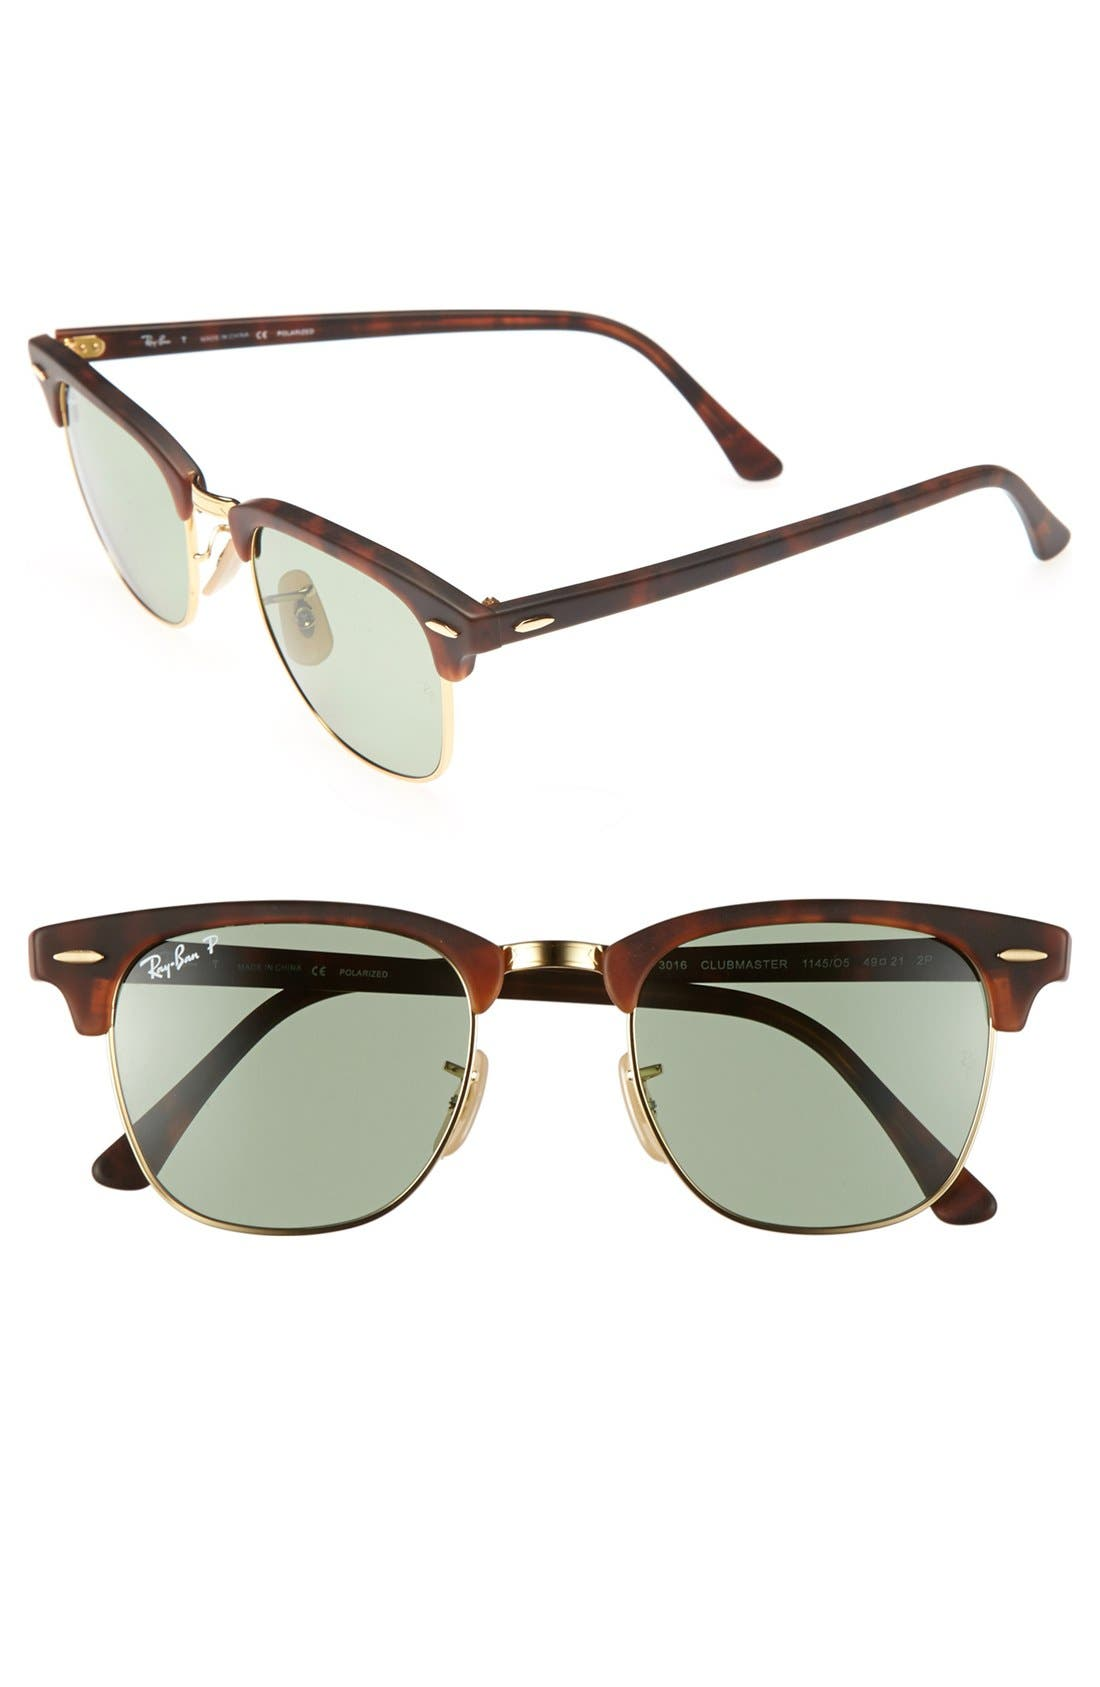 Main Image - Ray-Ban 'Clubmaster' 49mm Polarized Sunglasses